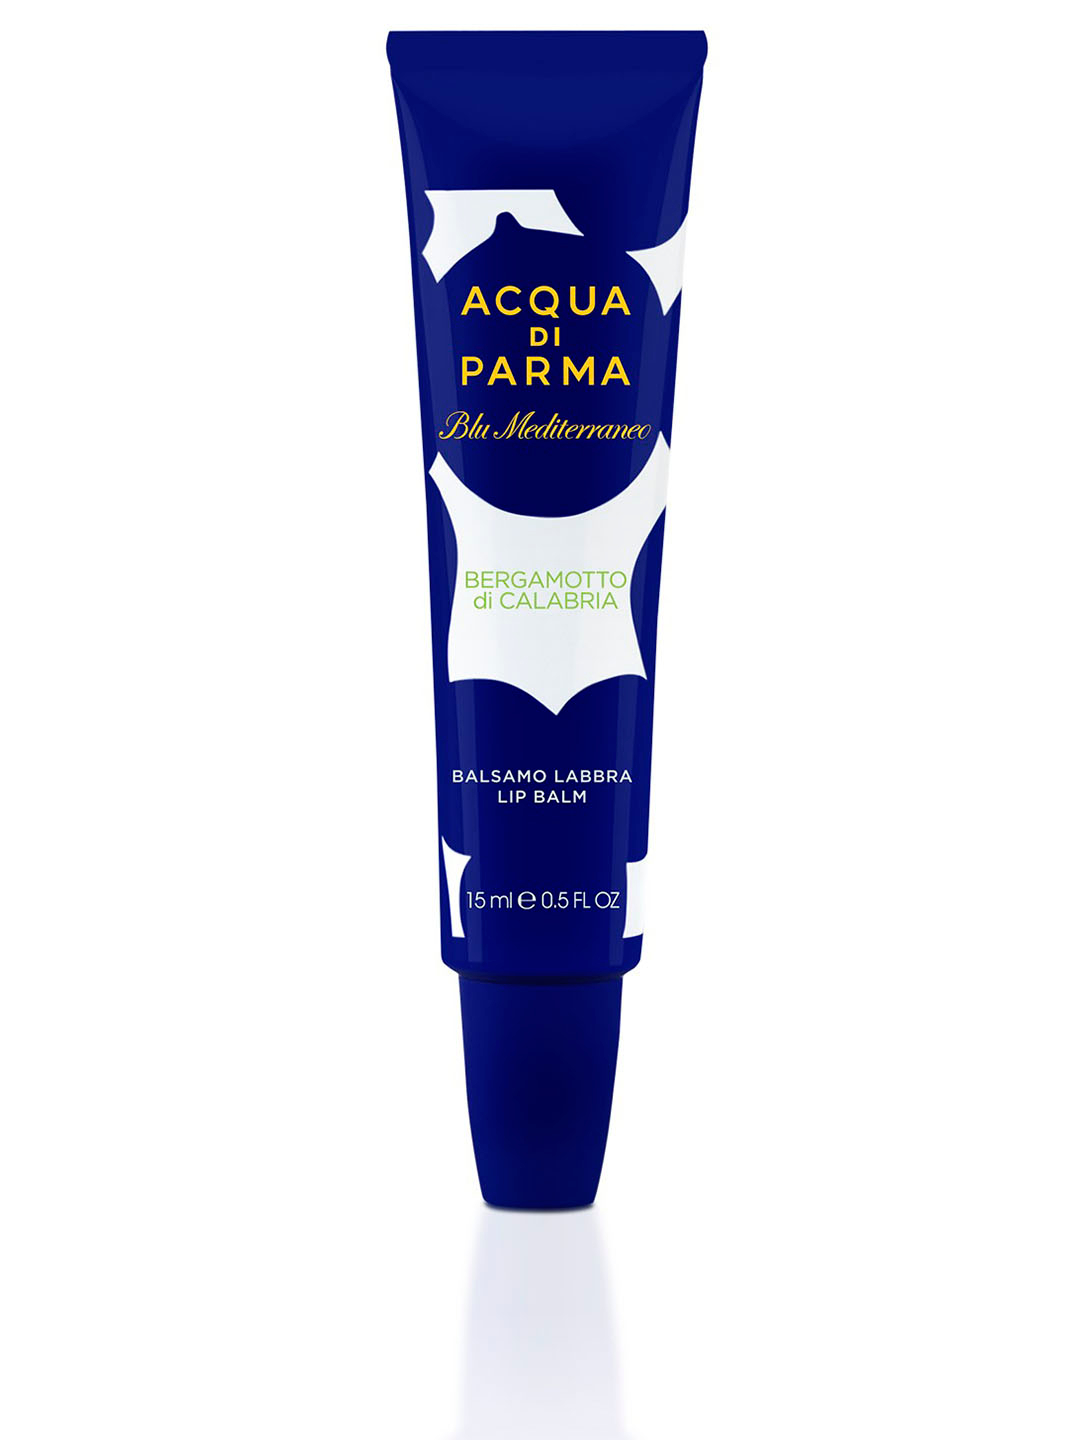 ACQUA DI PARMA Bergamotto di Calabria Lip Balm Beauty